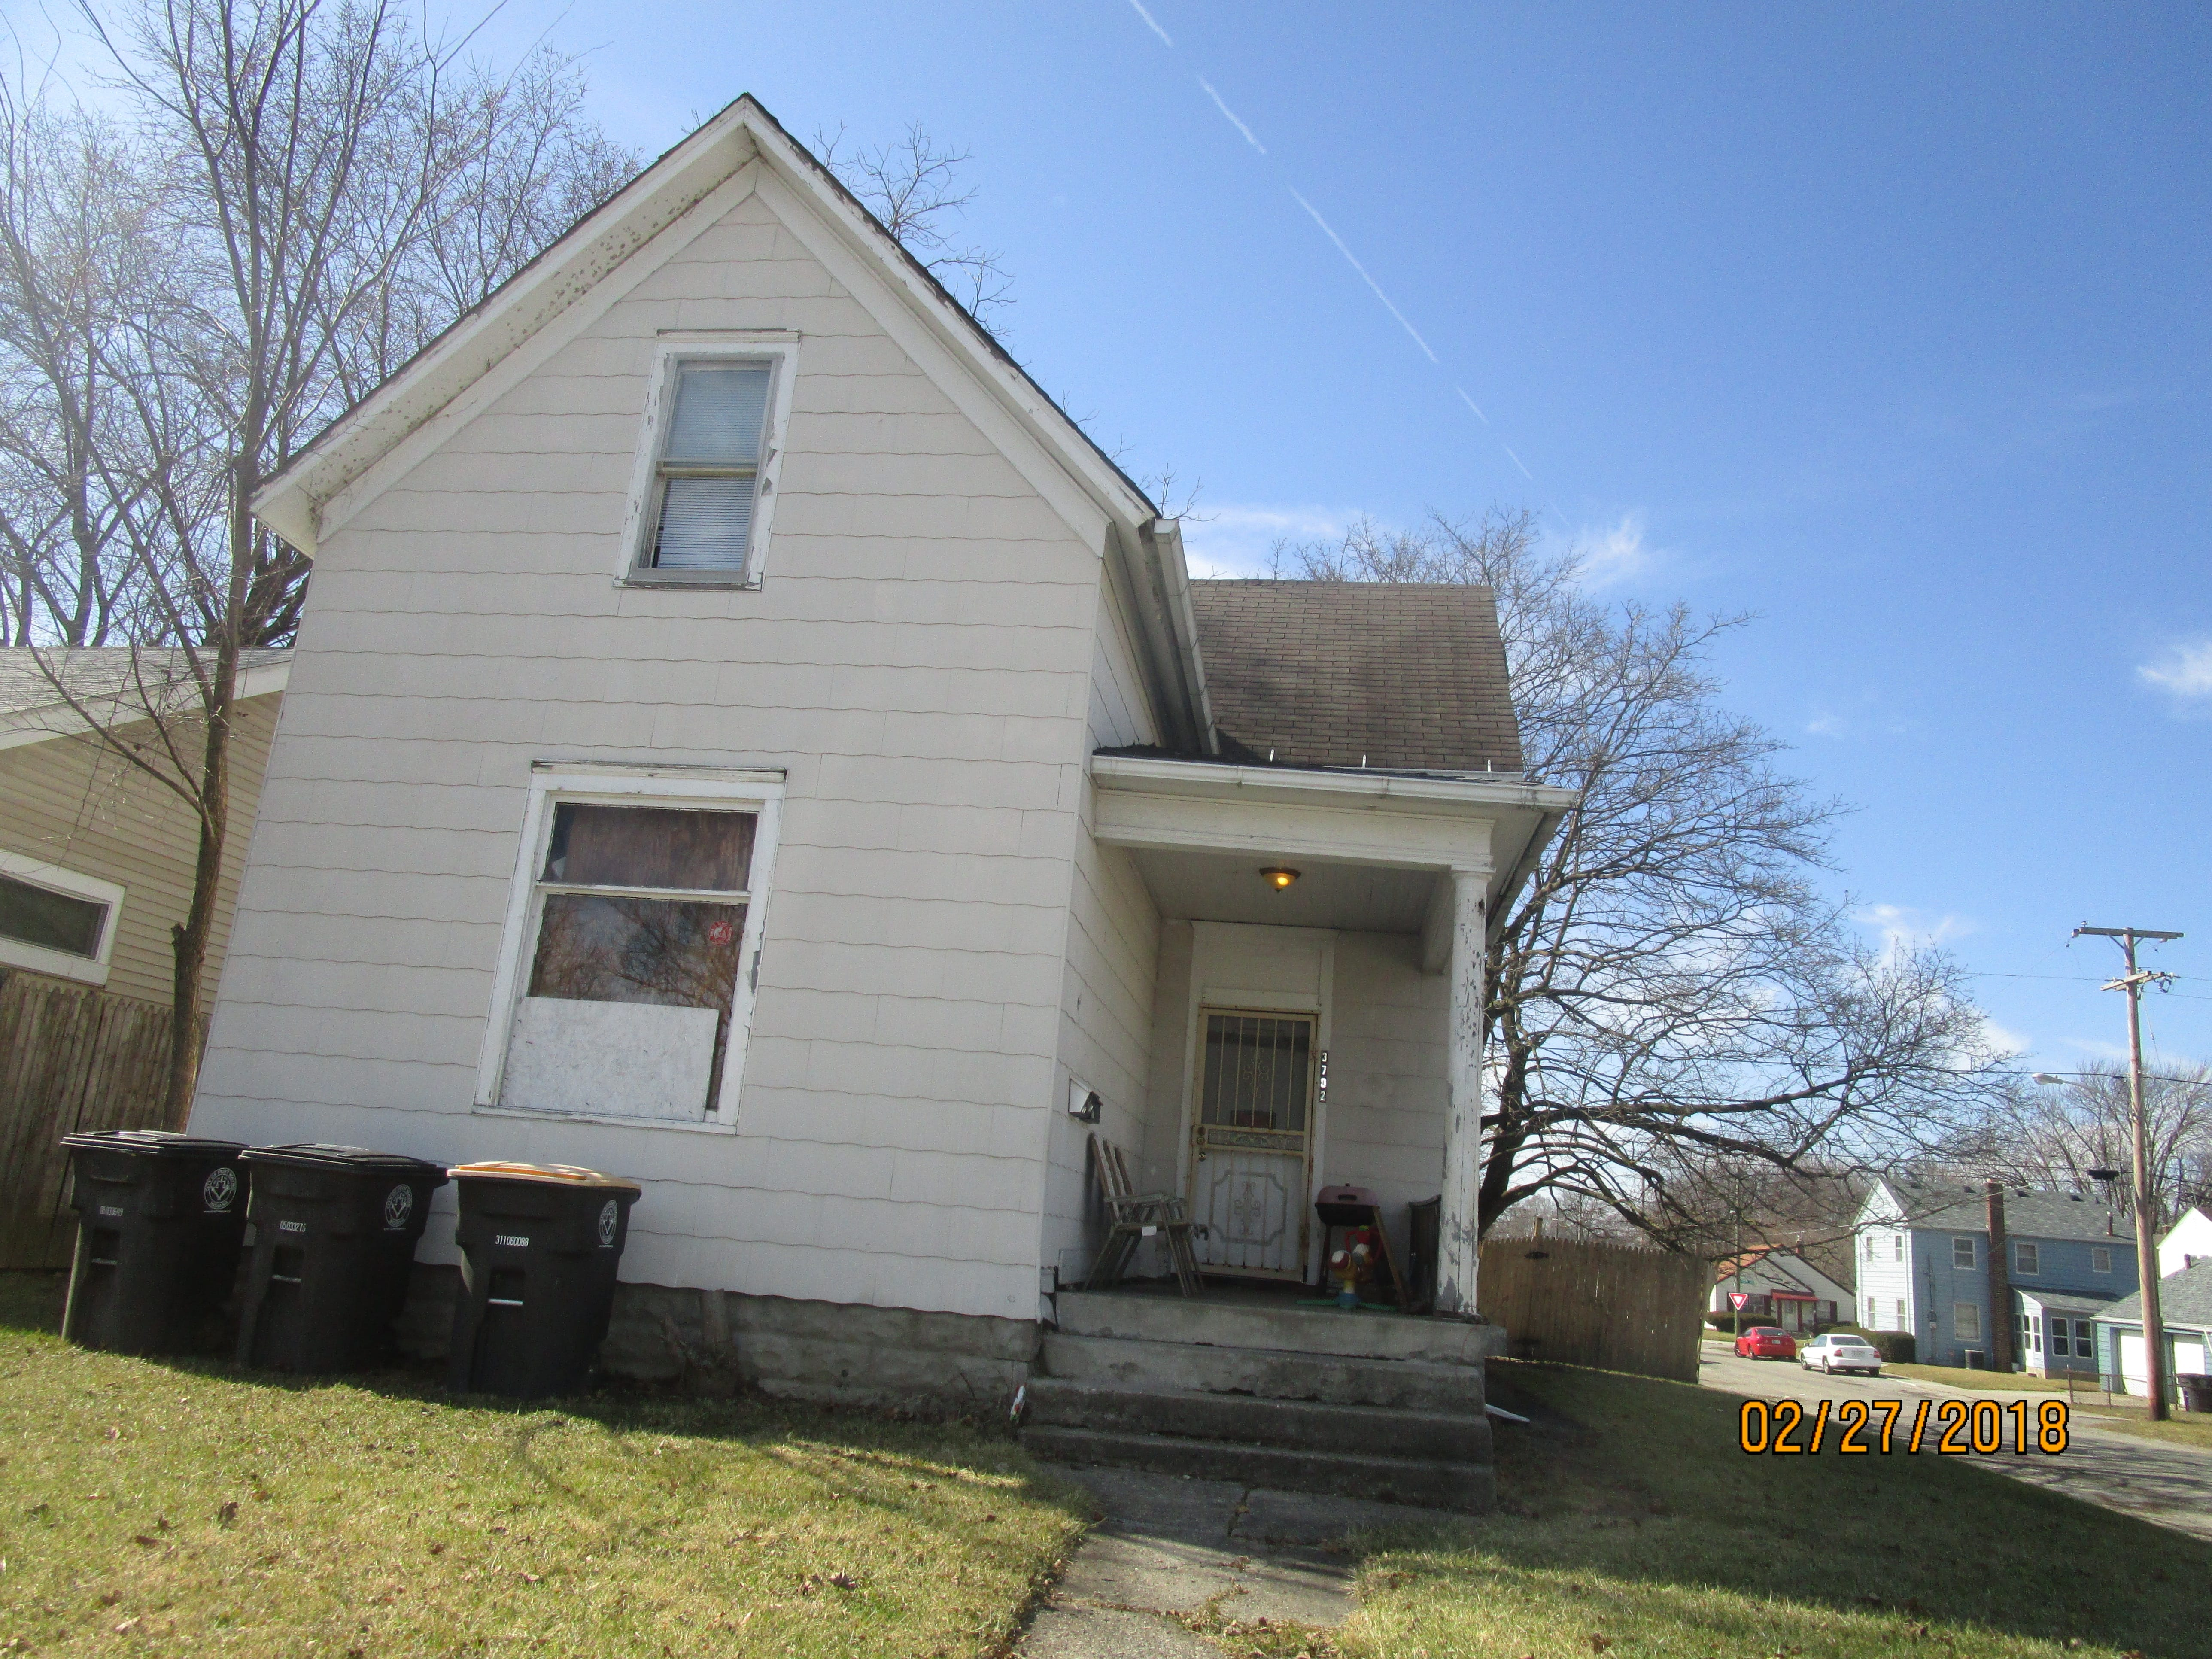 3702 Winter St, Fort Wayne IN, 46806